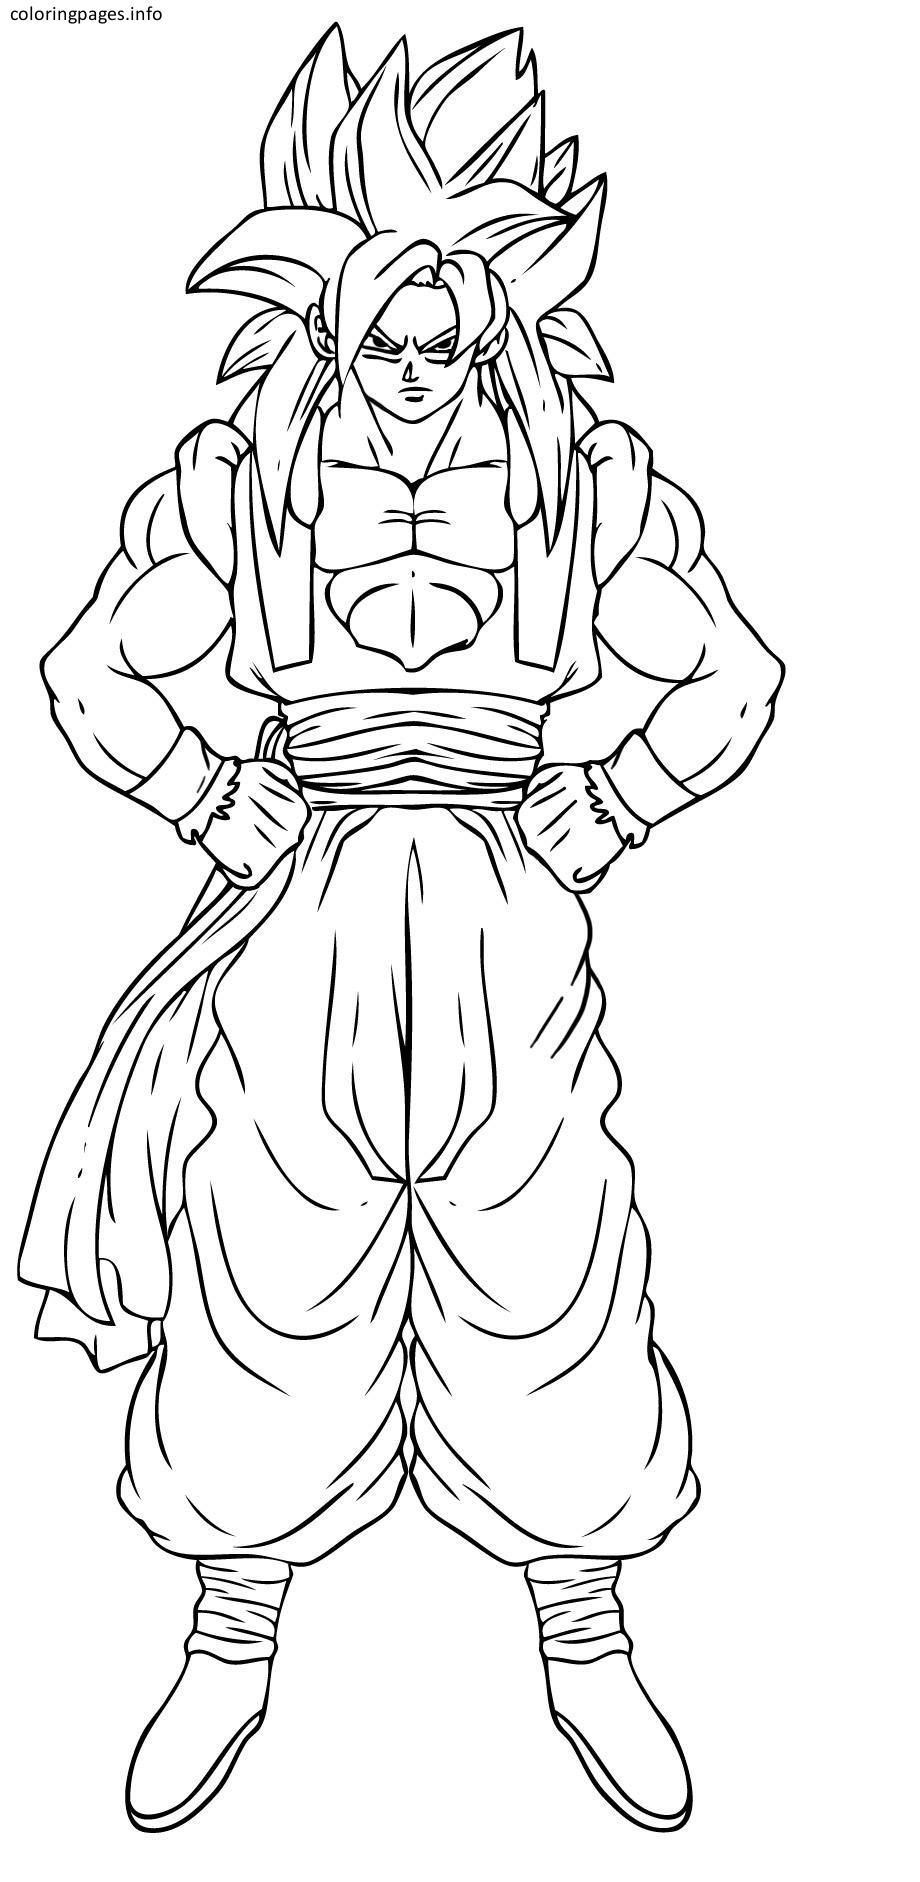 Dragon Ball Z Goku Coloring Pages Printable Coloring Pages